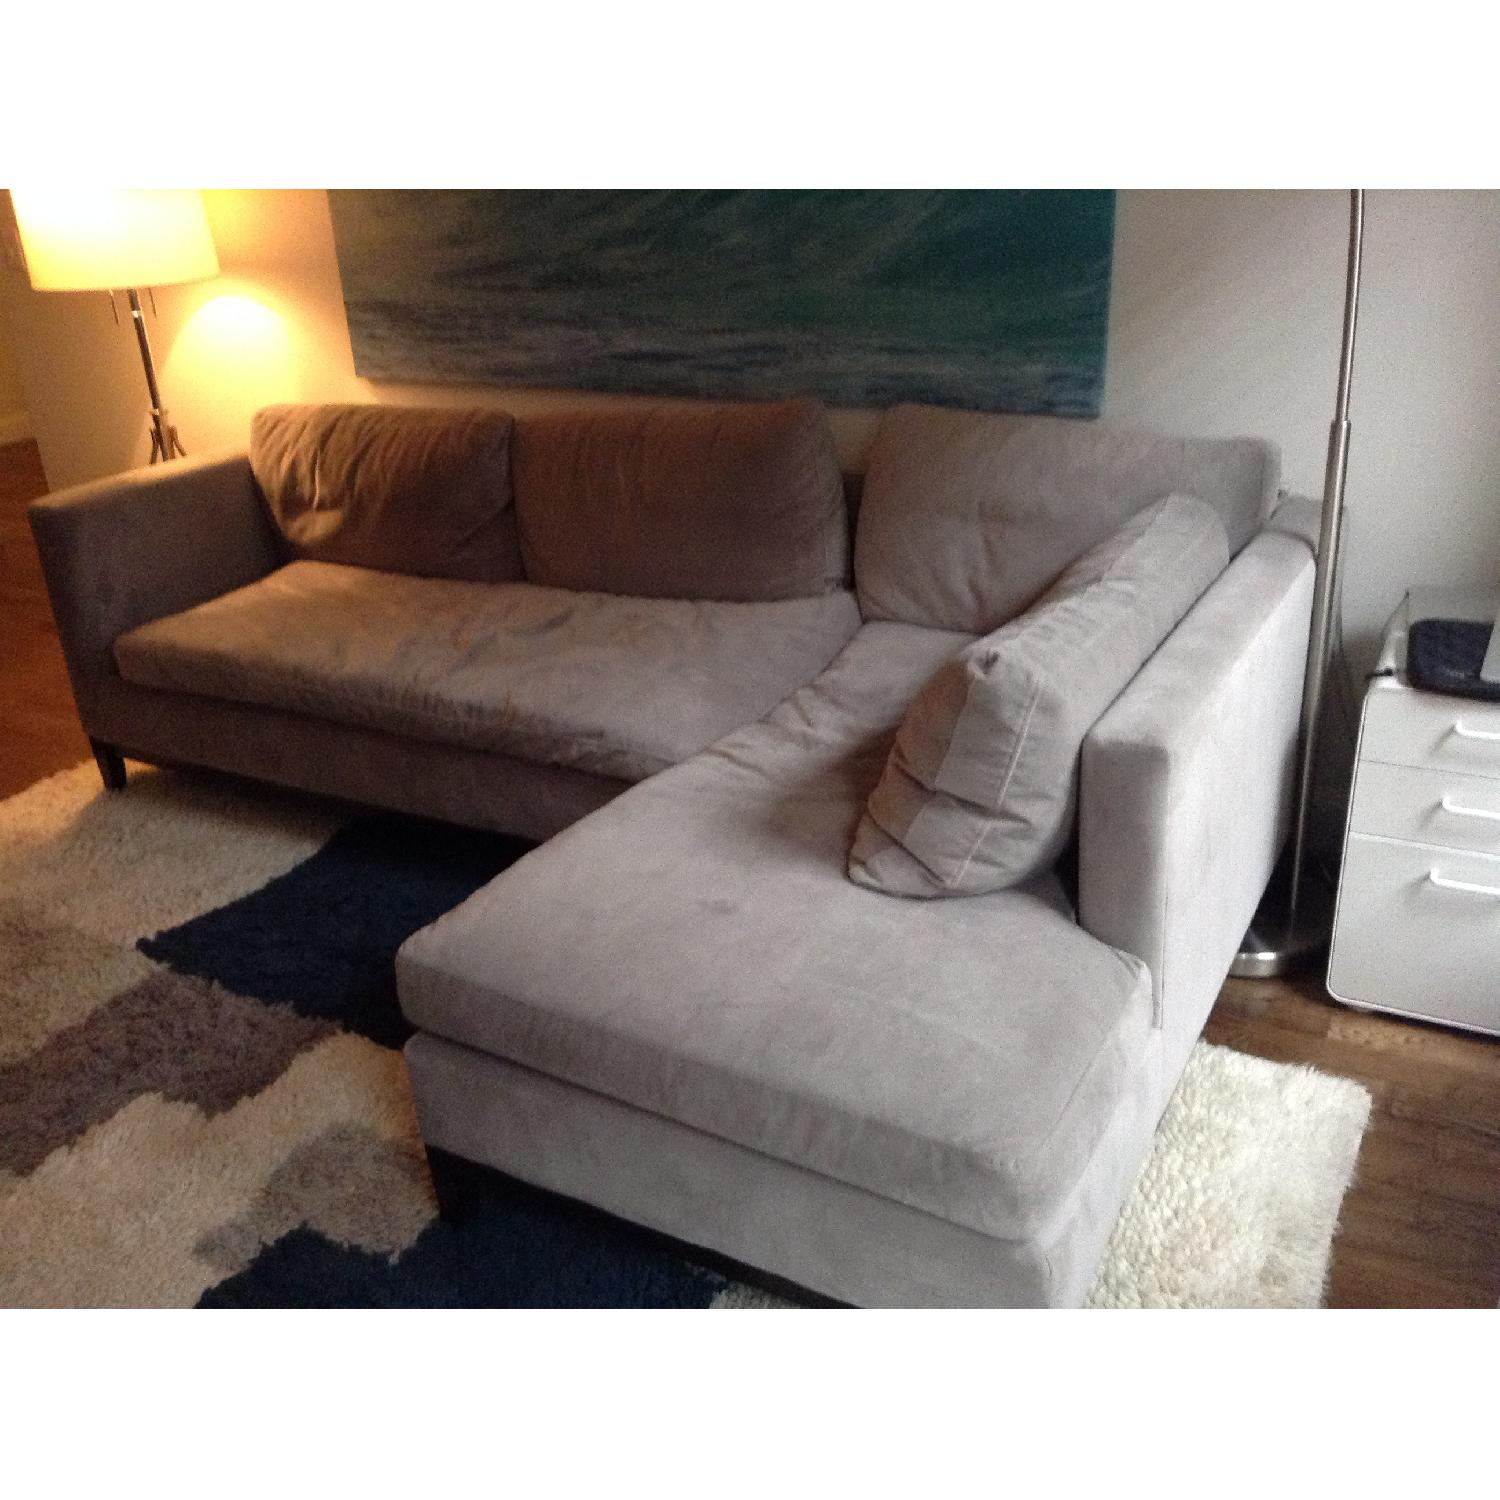 West Elm Blake Sectional Sofa w/ Chaise - image-4